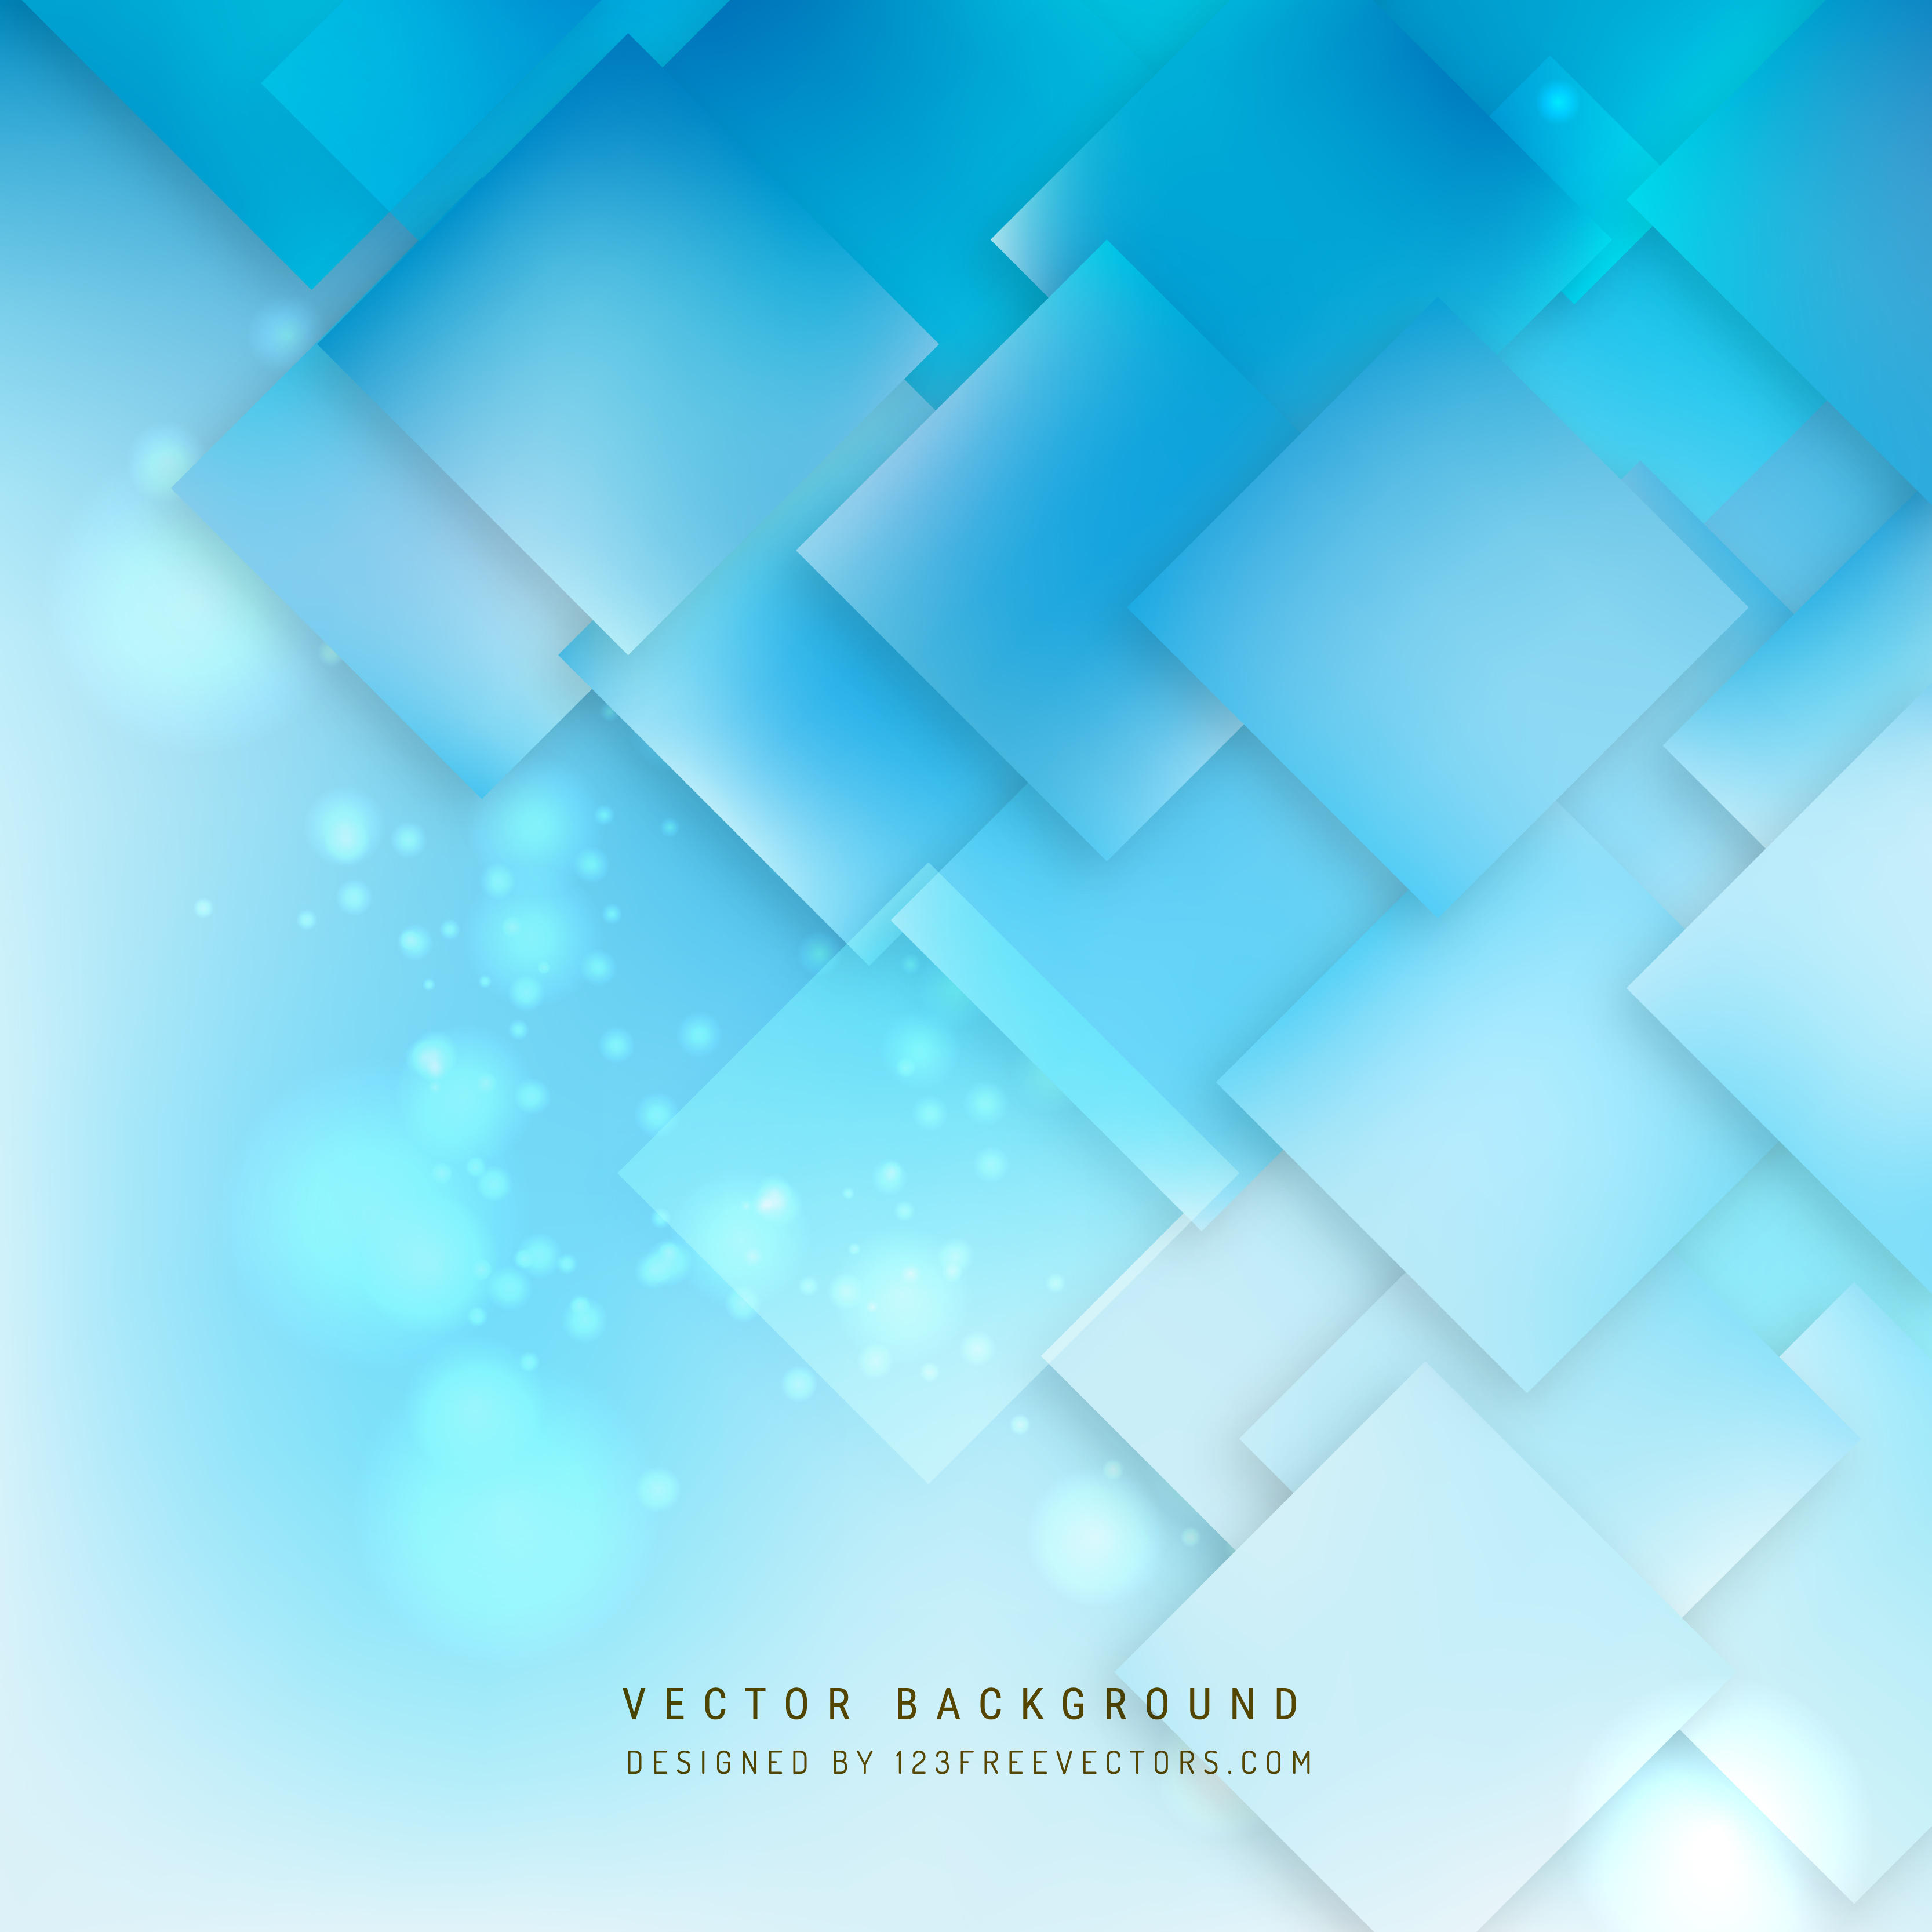 Abstract Light Blue Geometric Square Background